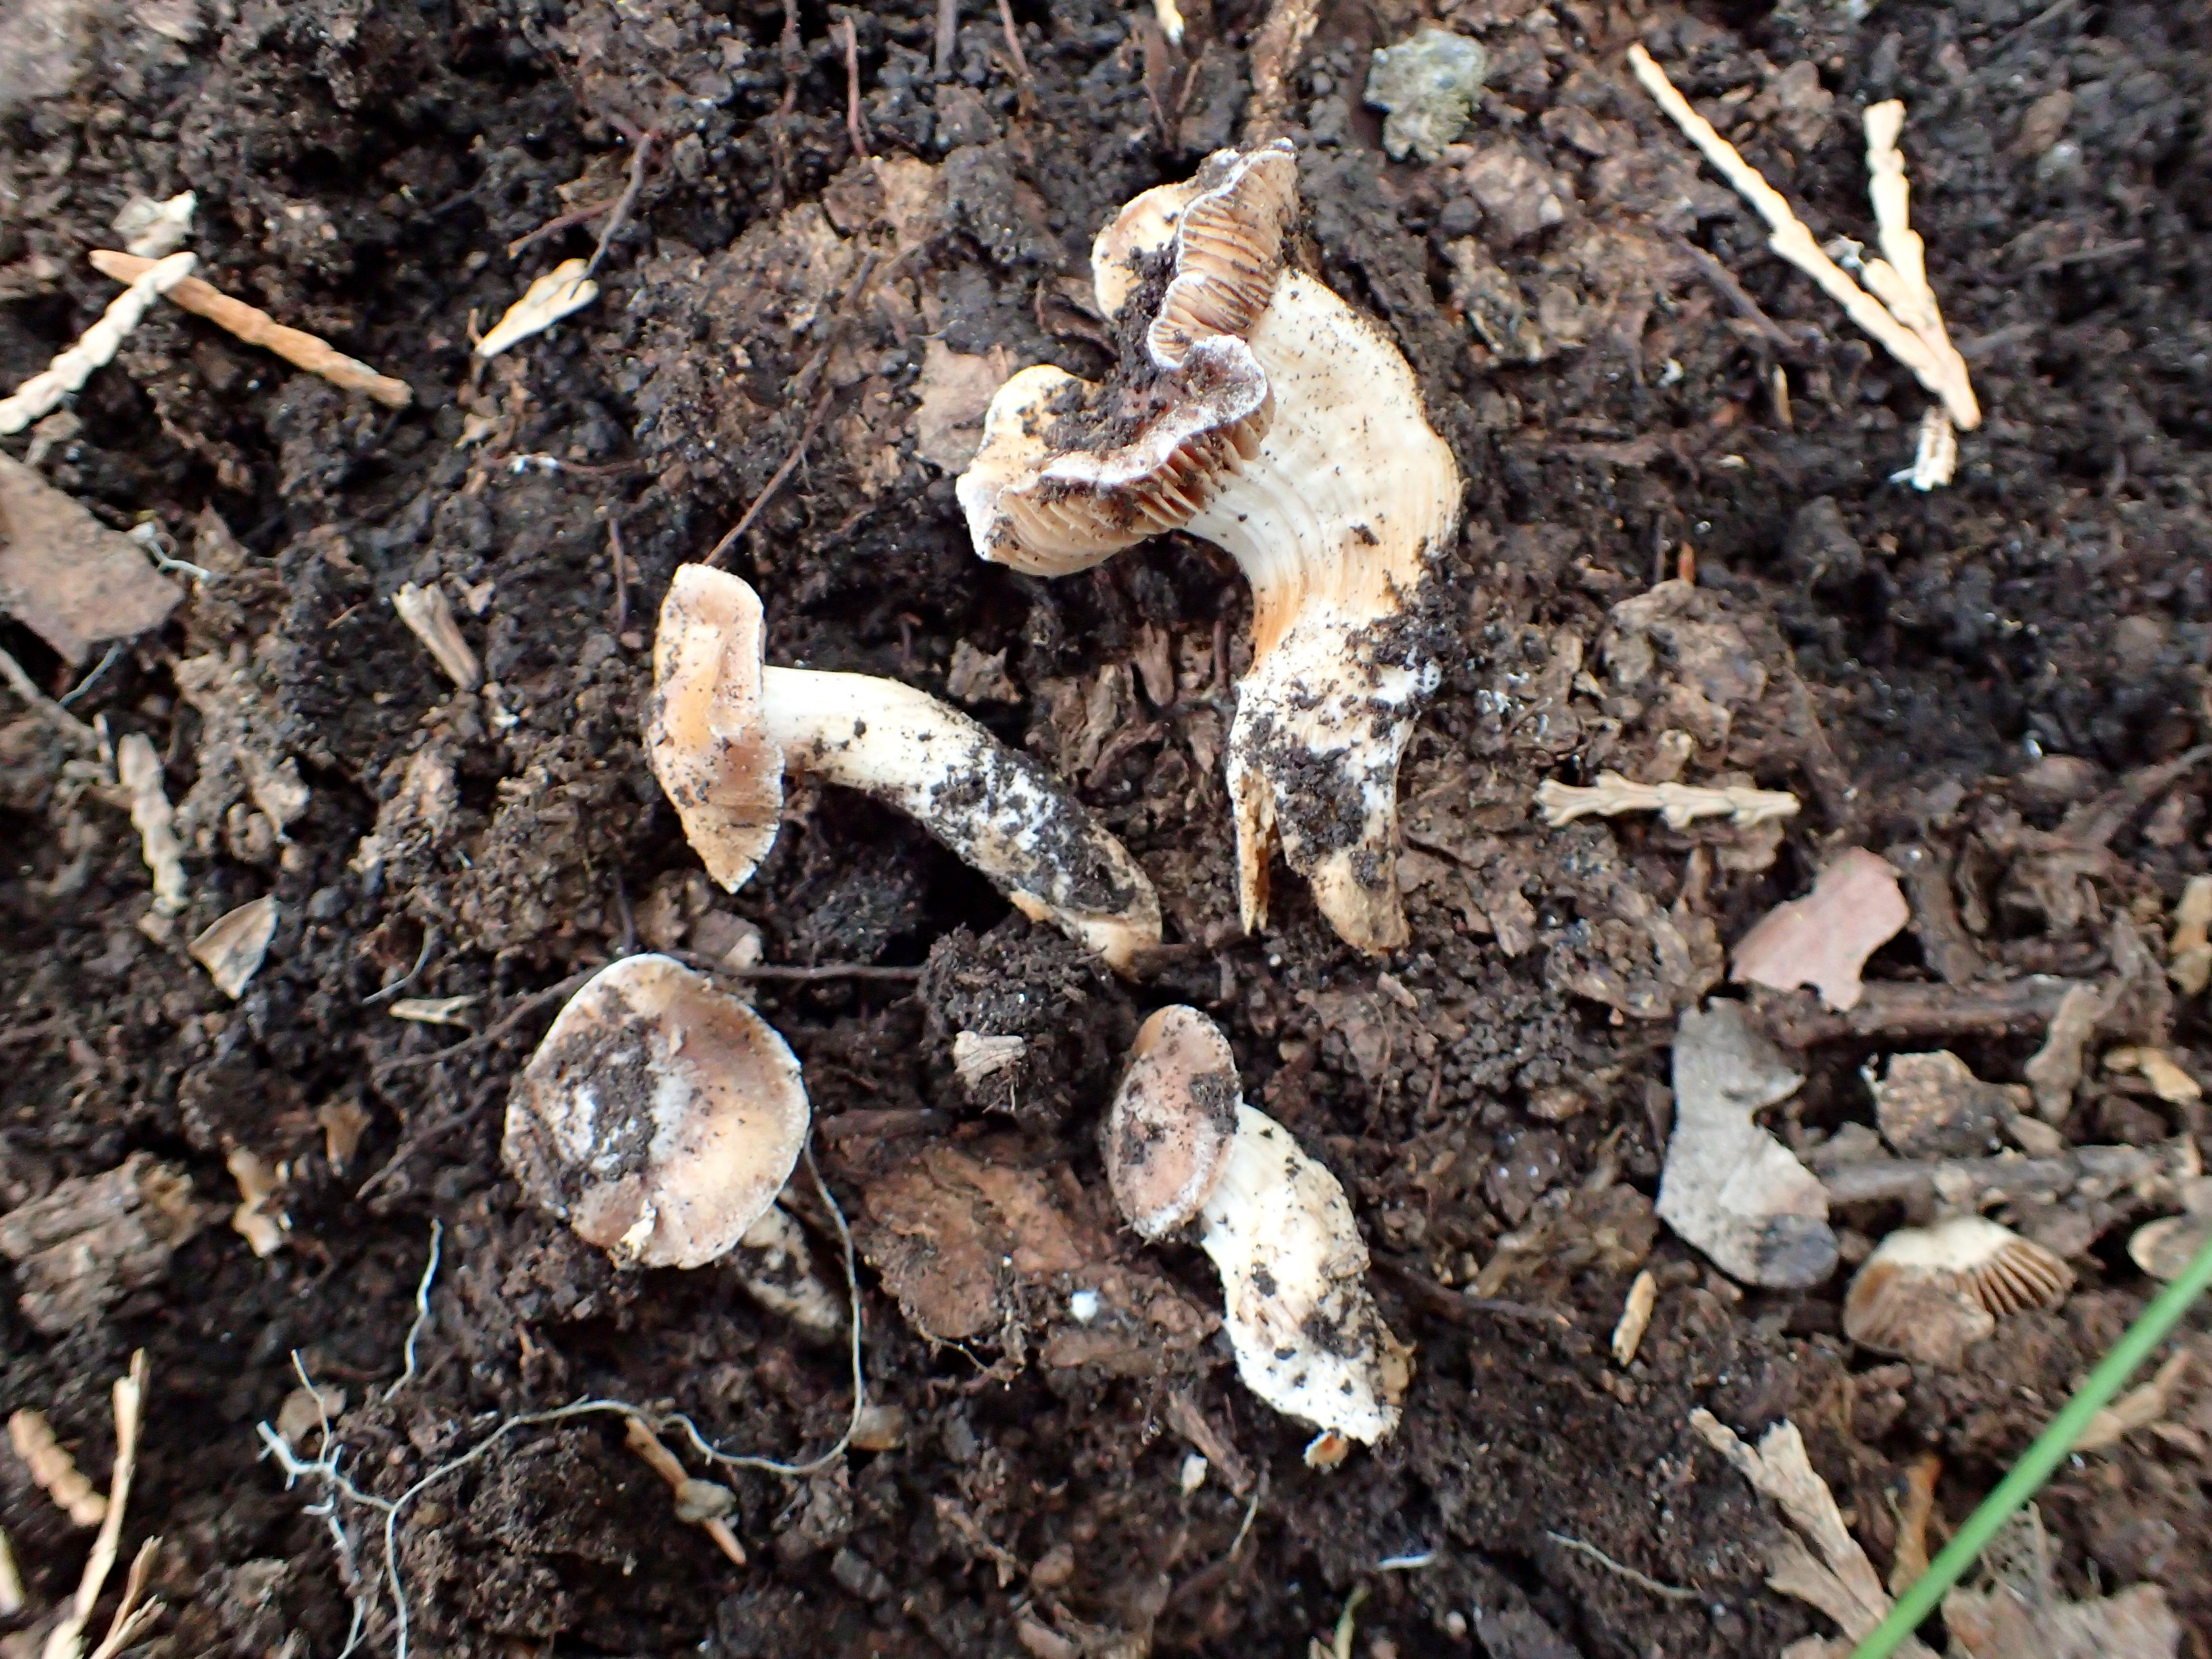 <p>Biologist Scot Loring says the newly discovered mushrooms are about 8 centimeters tall and have convex caps with a mix of brownish tones, white margins, a white veil, tan gills, and a whitish stem that tapers to the base. Photo courtesy Scot Loring<br></p>